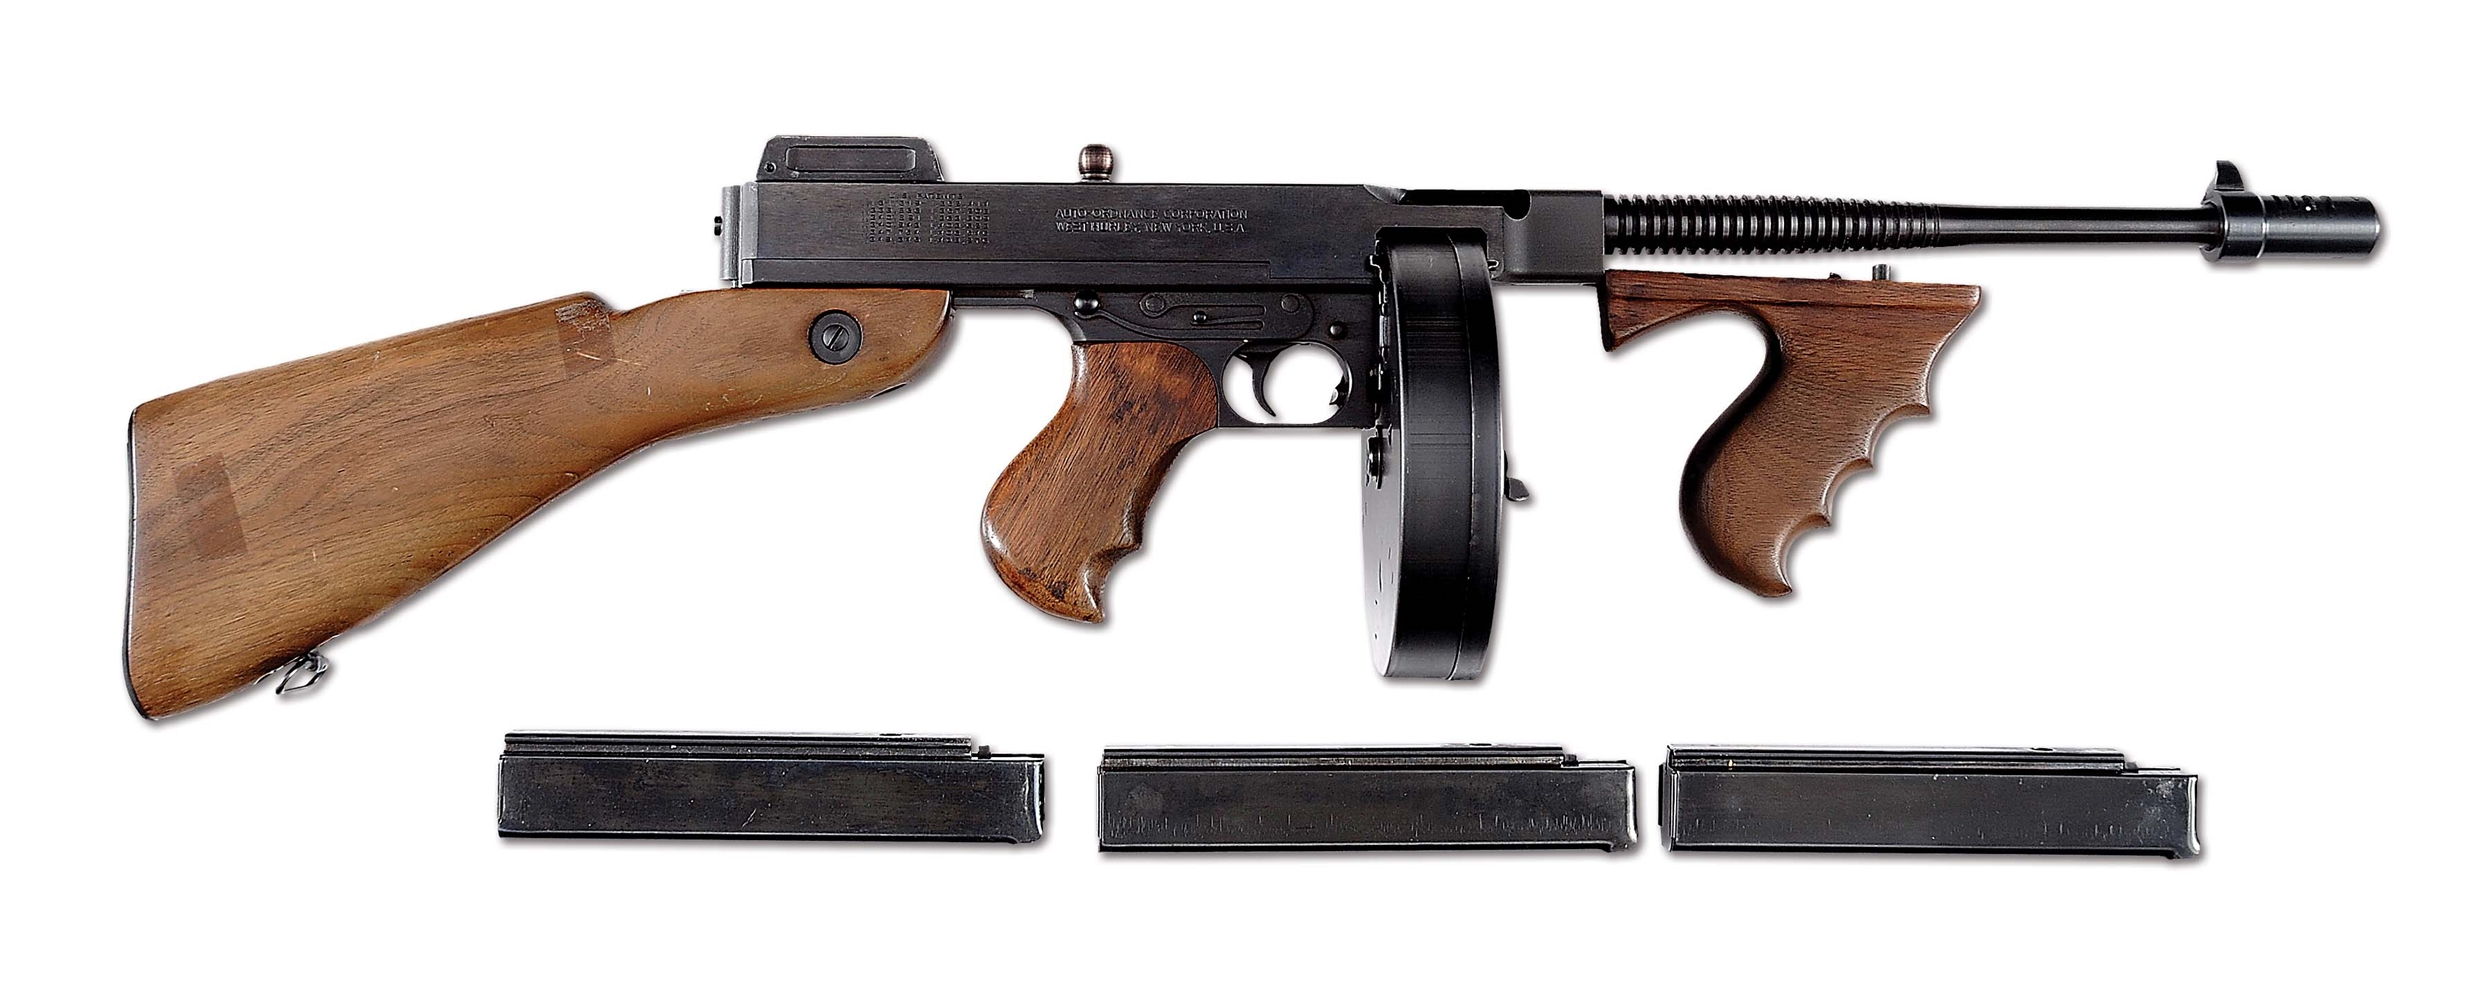 (N) EXCEEDINGLY FINE WEST HURLEY MODEL 1928 THOMPSON MACHINE GUN (CURIO & RELIC).